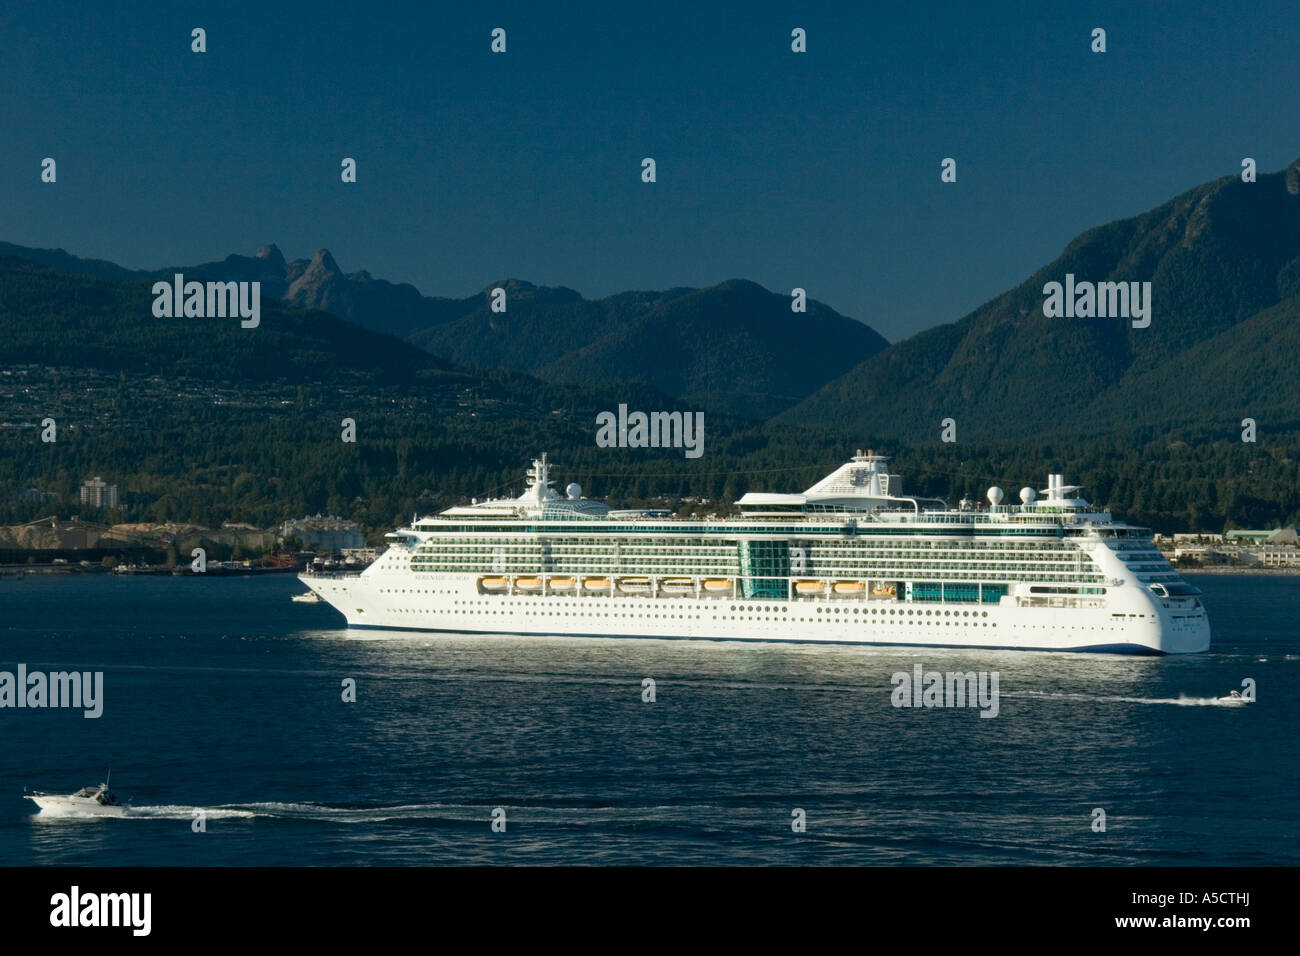 Scenic vews of Royal Caribbean Cruise Lines Serenade of the Seas in the port of Vancouver BC Canada - Stock Image